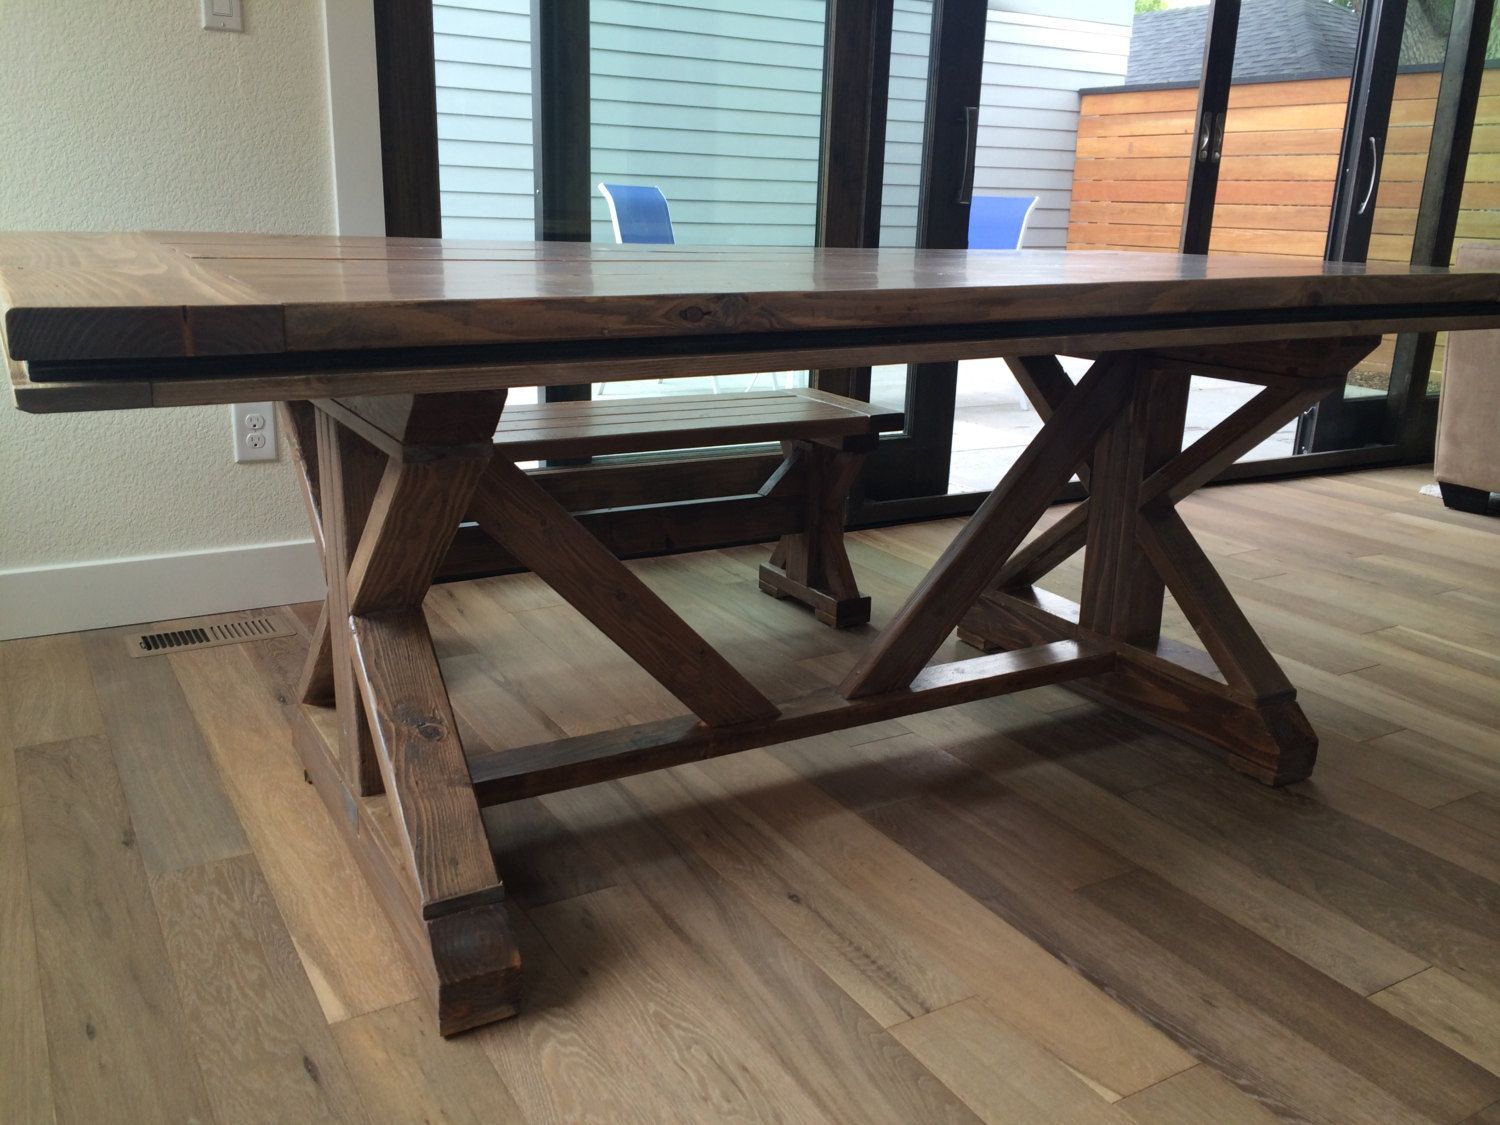 Discover A Farmhouse Table And Chairs On Gumtree The 1 Site For Dining Tables Chairs For Sale Classifieds Ads In The Uk Farmhousetable Farmhouse Rustic